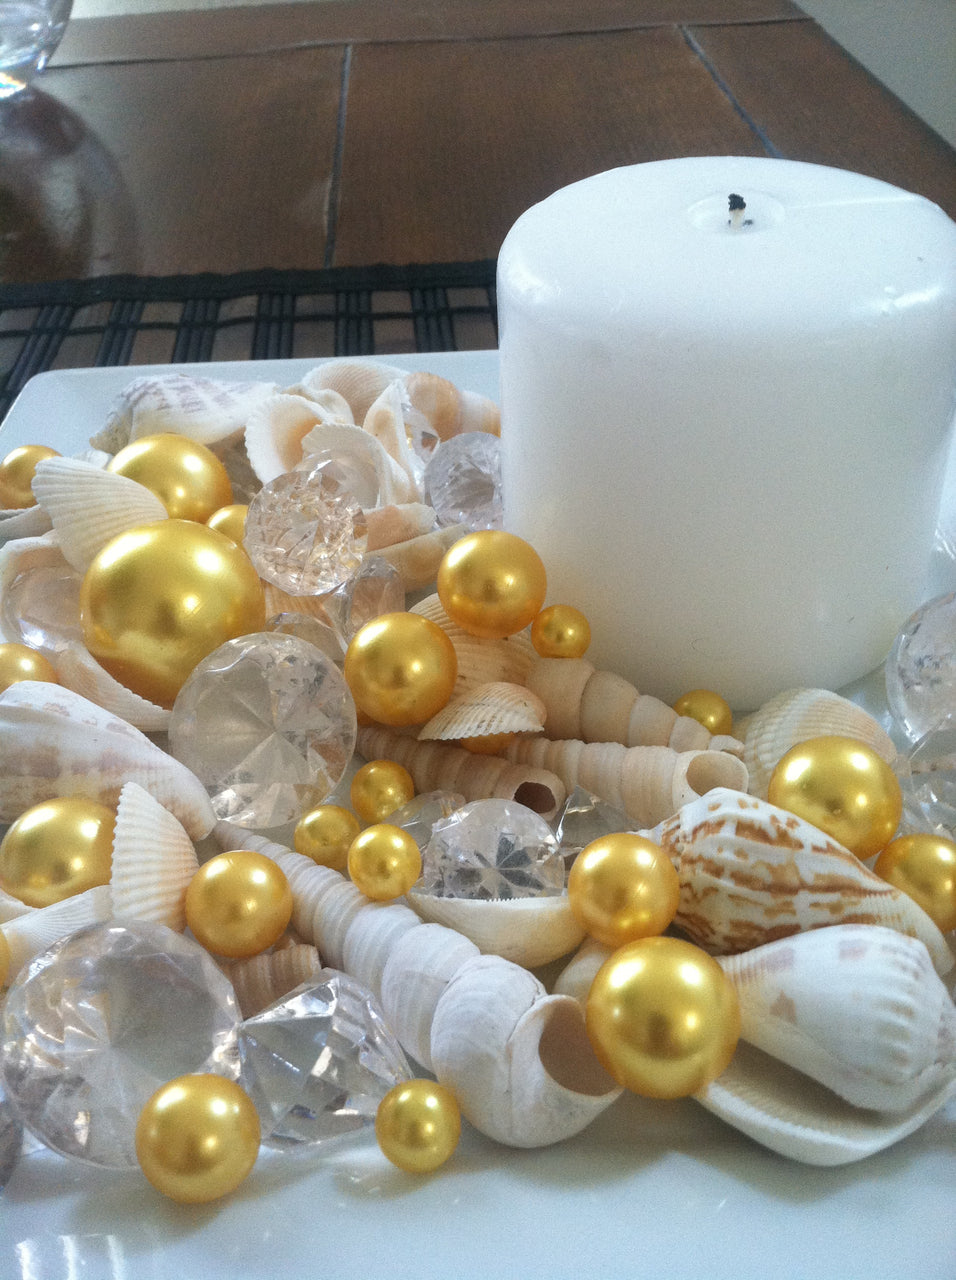 Mix Seashells, Gold Pearls & Diamond Vase Fillers, Bowl Fillers, Table Scatter/Confetti, Coastal Decor